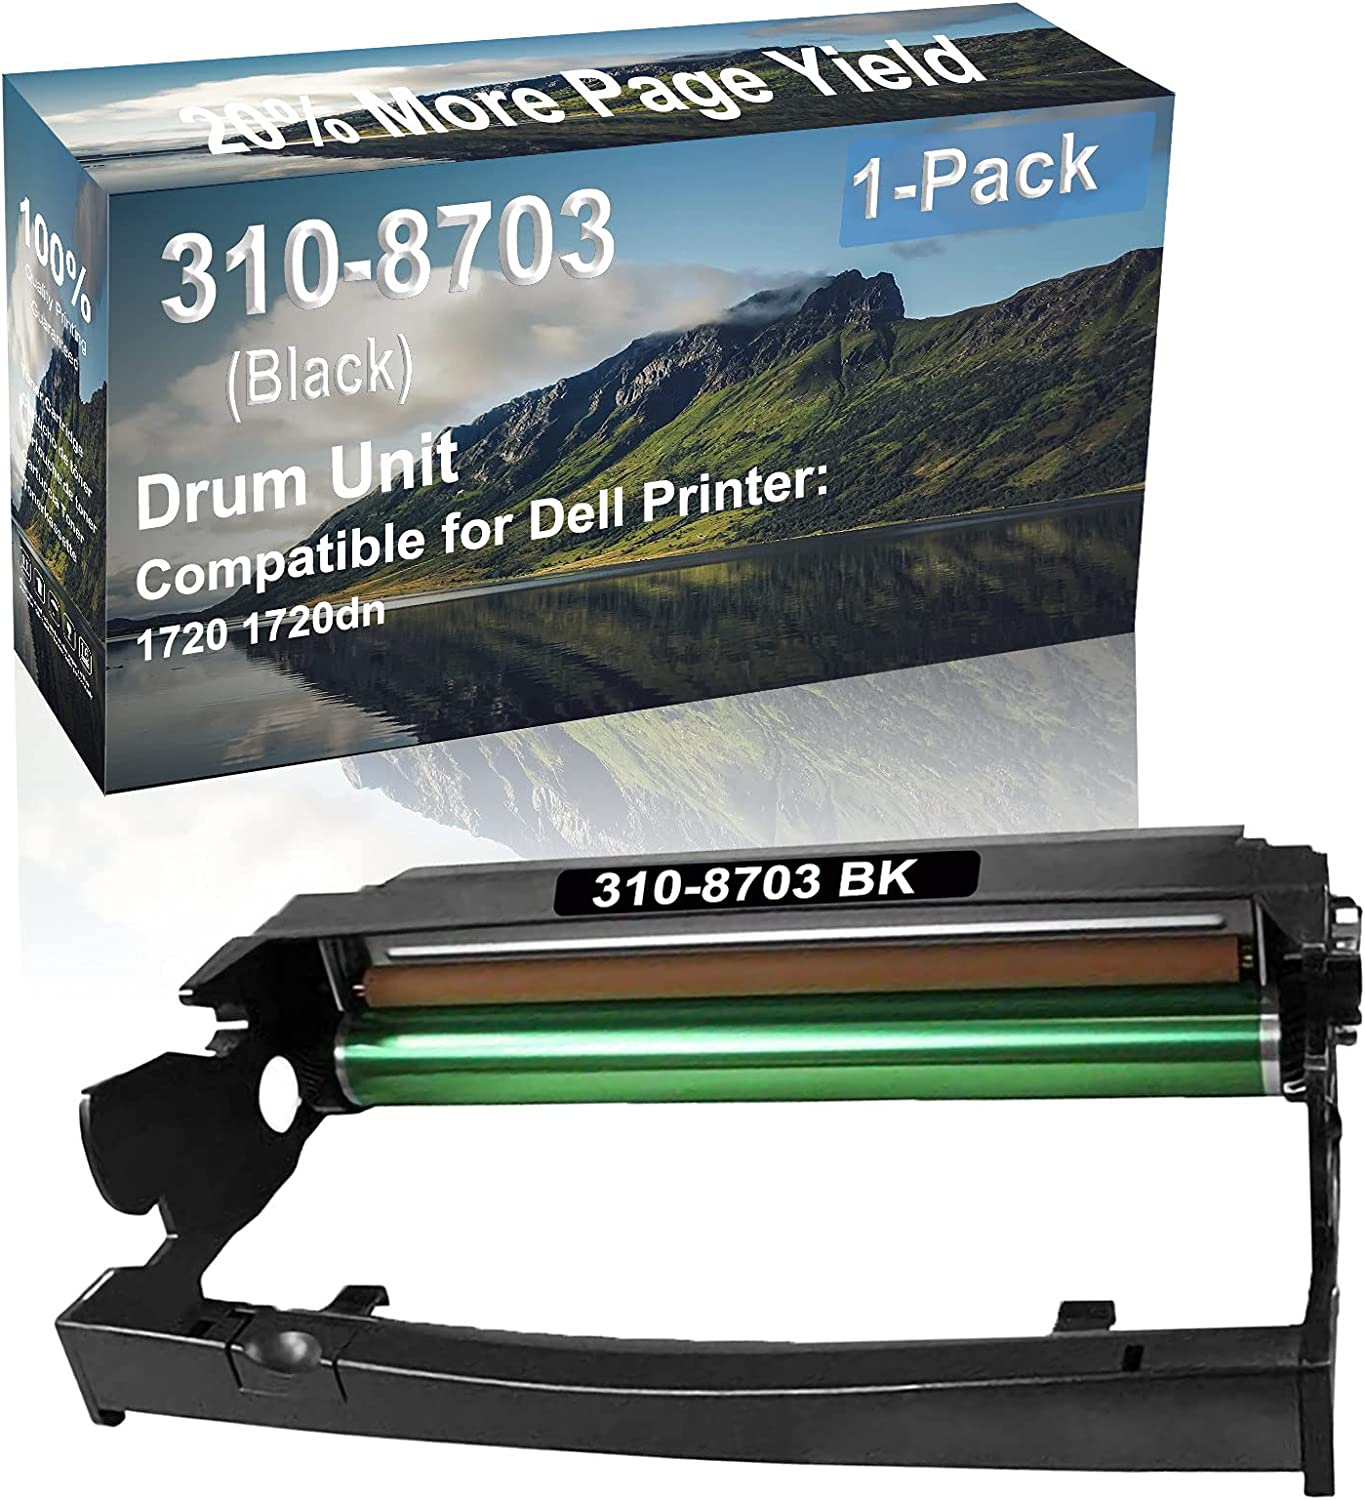 1-Pack Compatible 310-8703 Drum Kit use for Dell 1720 1720dn Printer (Black)